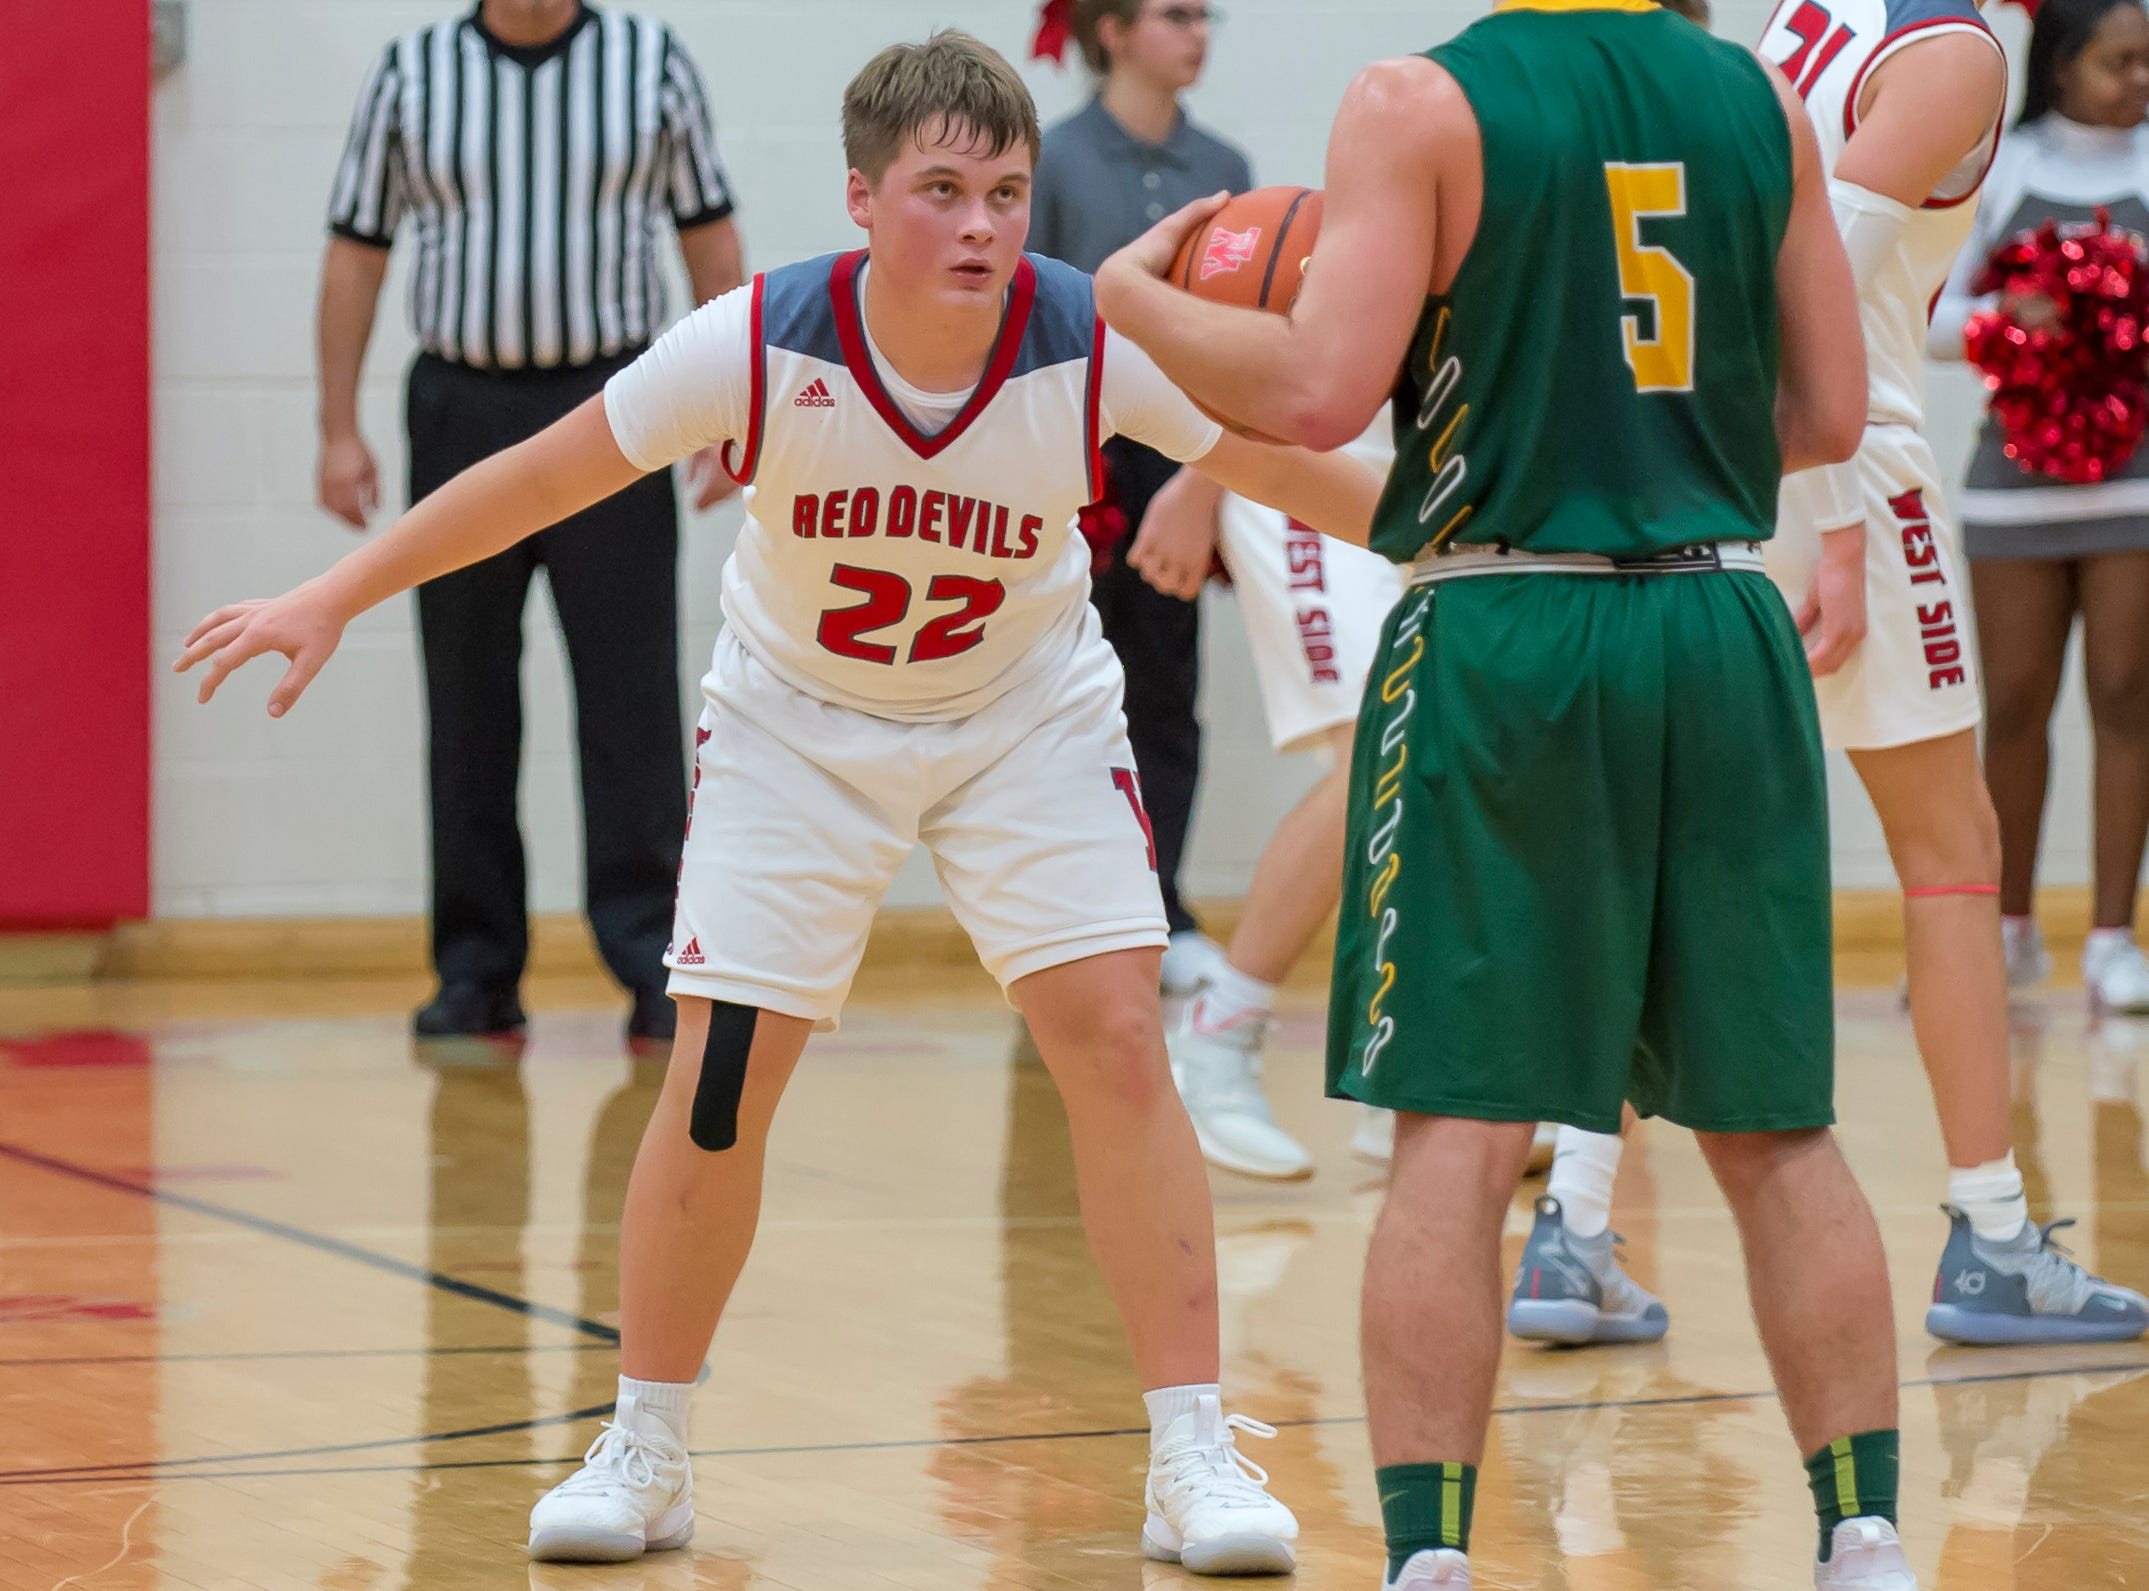 Action from the Benton Central at West Lafayette basketball game on December 14, 2018 - Colin Martin